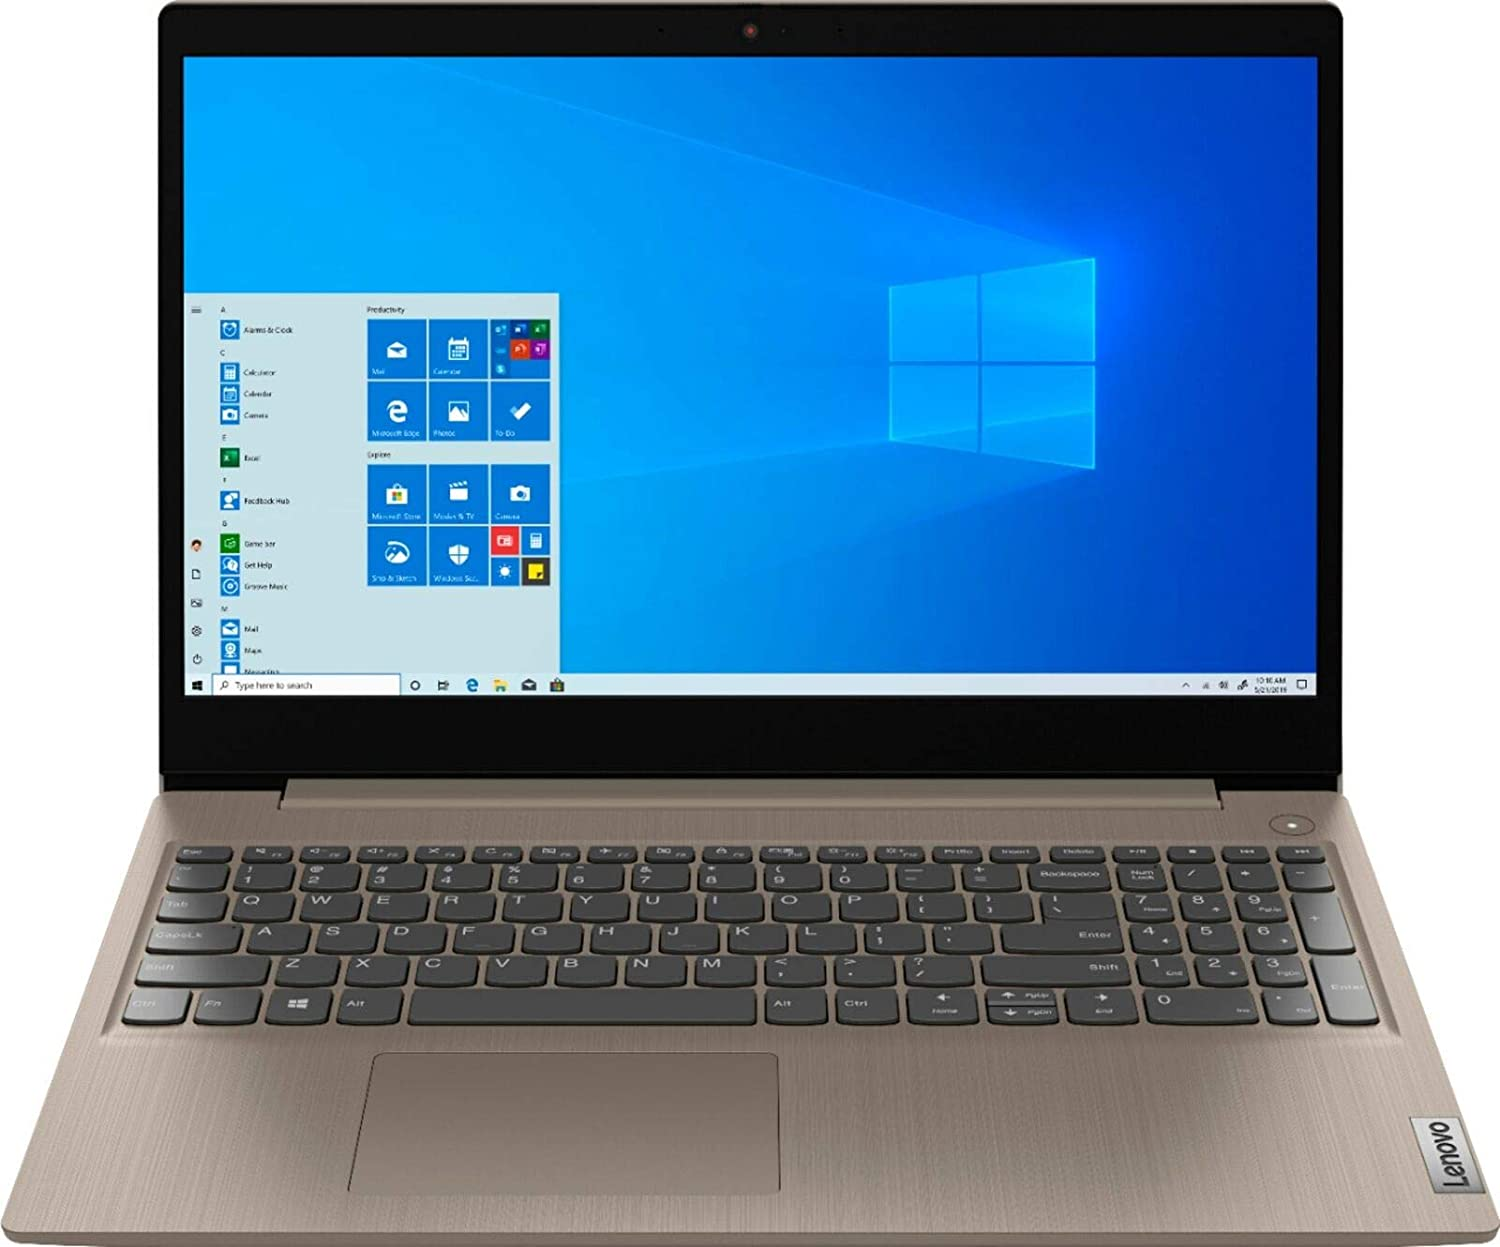 "Lenovo IdeaPad 3 15.6"" HD Touchscreen Anti-glare LED-Backlit Laptop, Intel Quad Core i5-1035G1, 12GB DDR4, 1TB HDD, 4-in-1 Card Reader, Webcam, Bluetooth, Wi-Fi 6, HDMI, Windows 10 w/ 32GB Flash Drive"